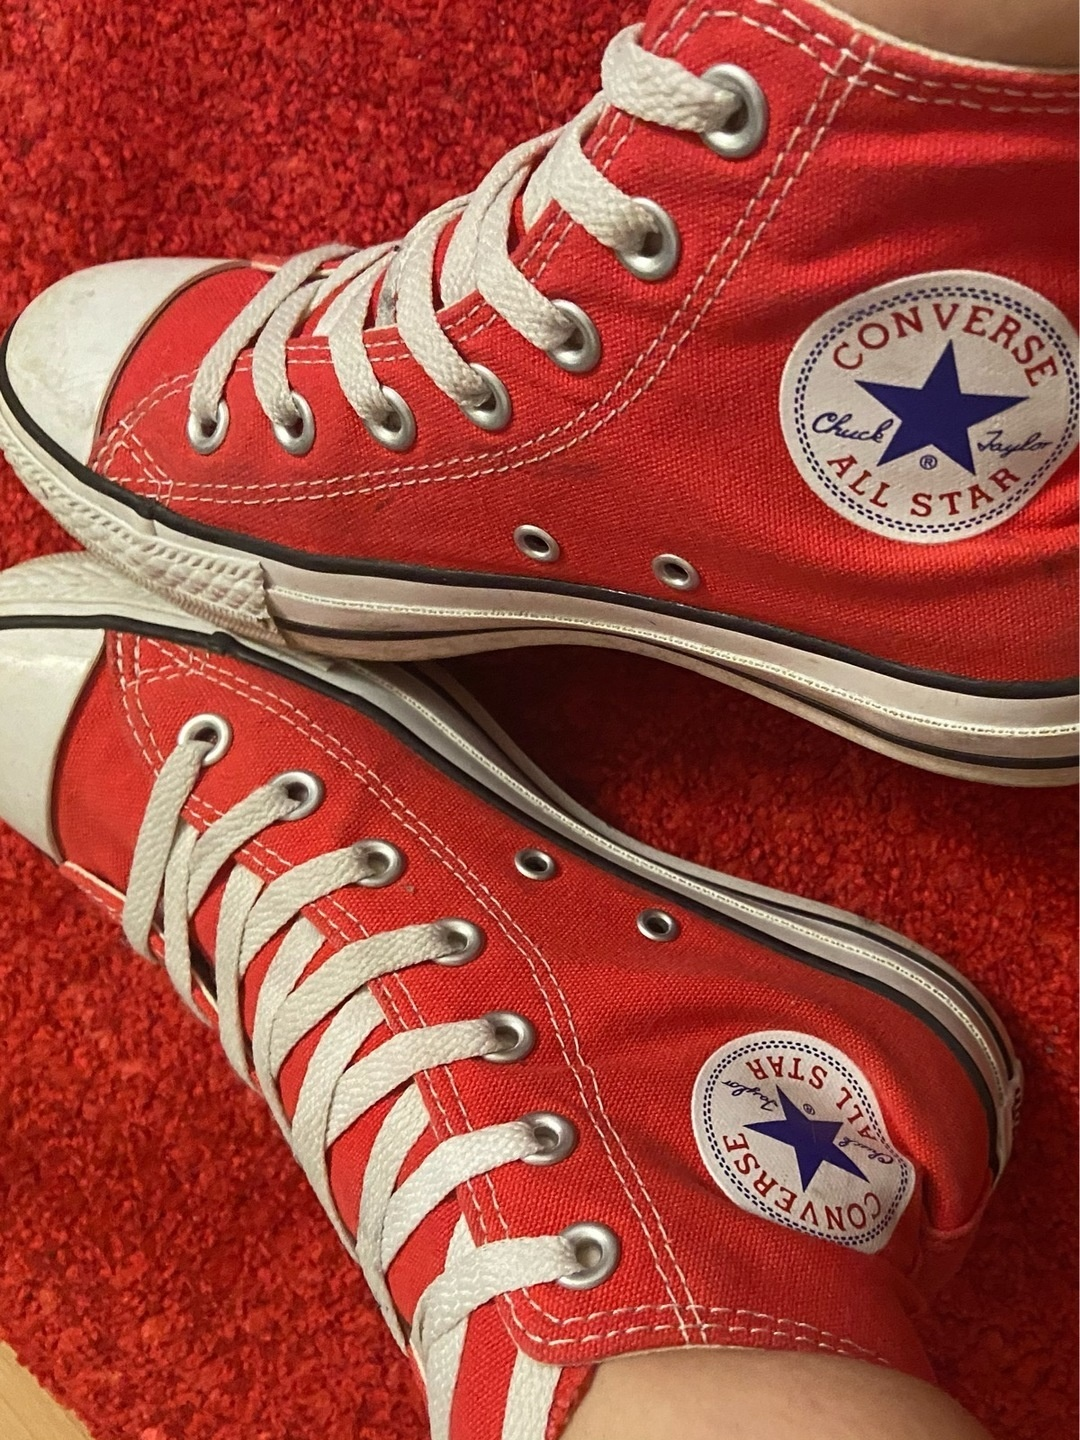 Women's sneakers - CONVERSE photo 4